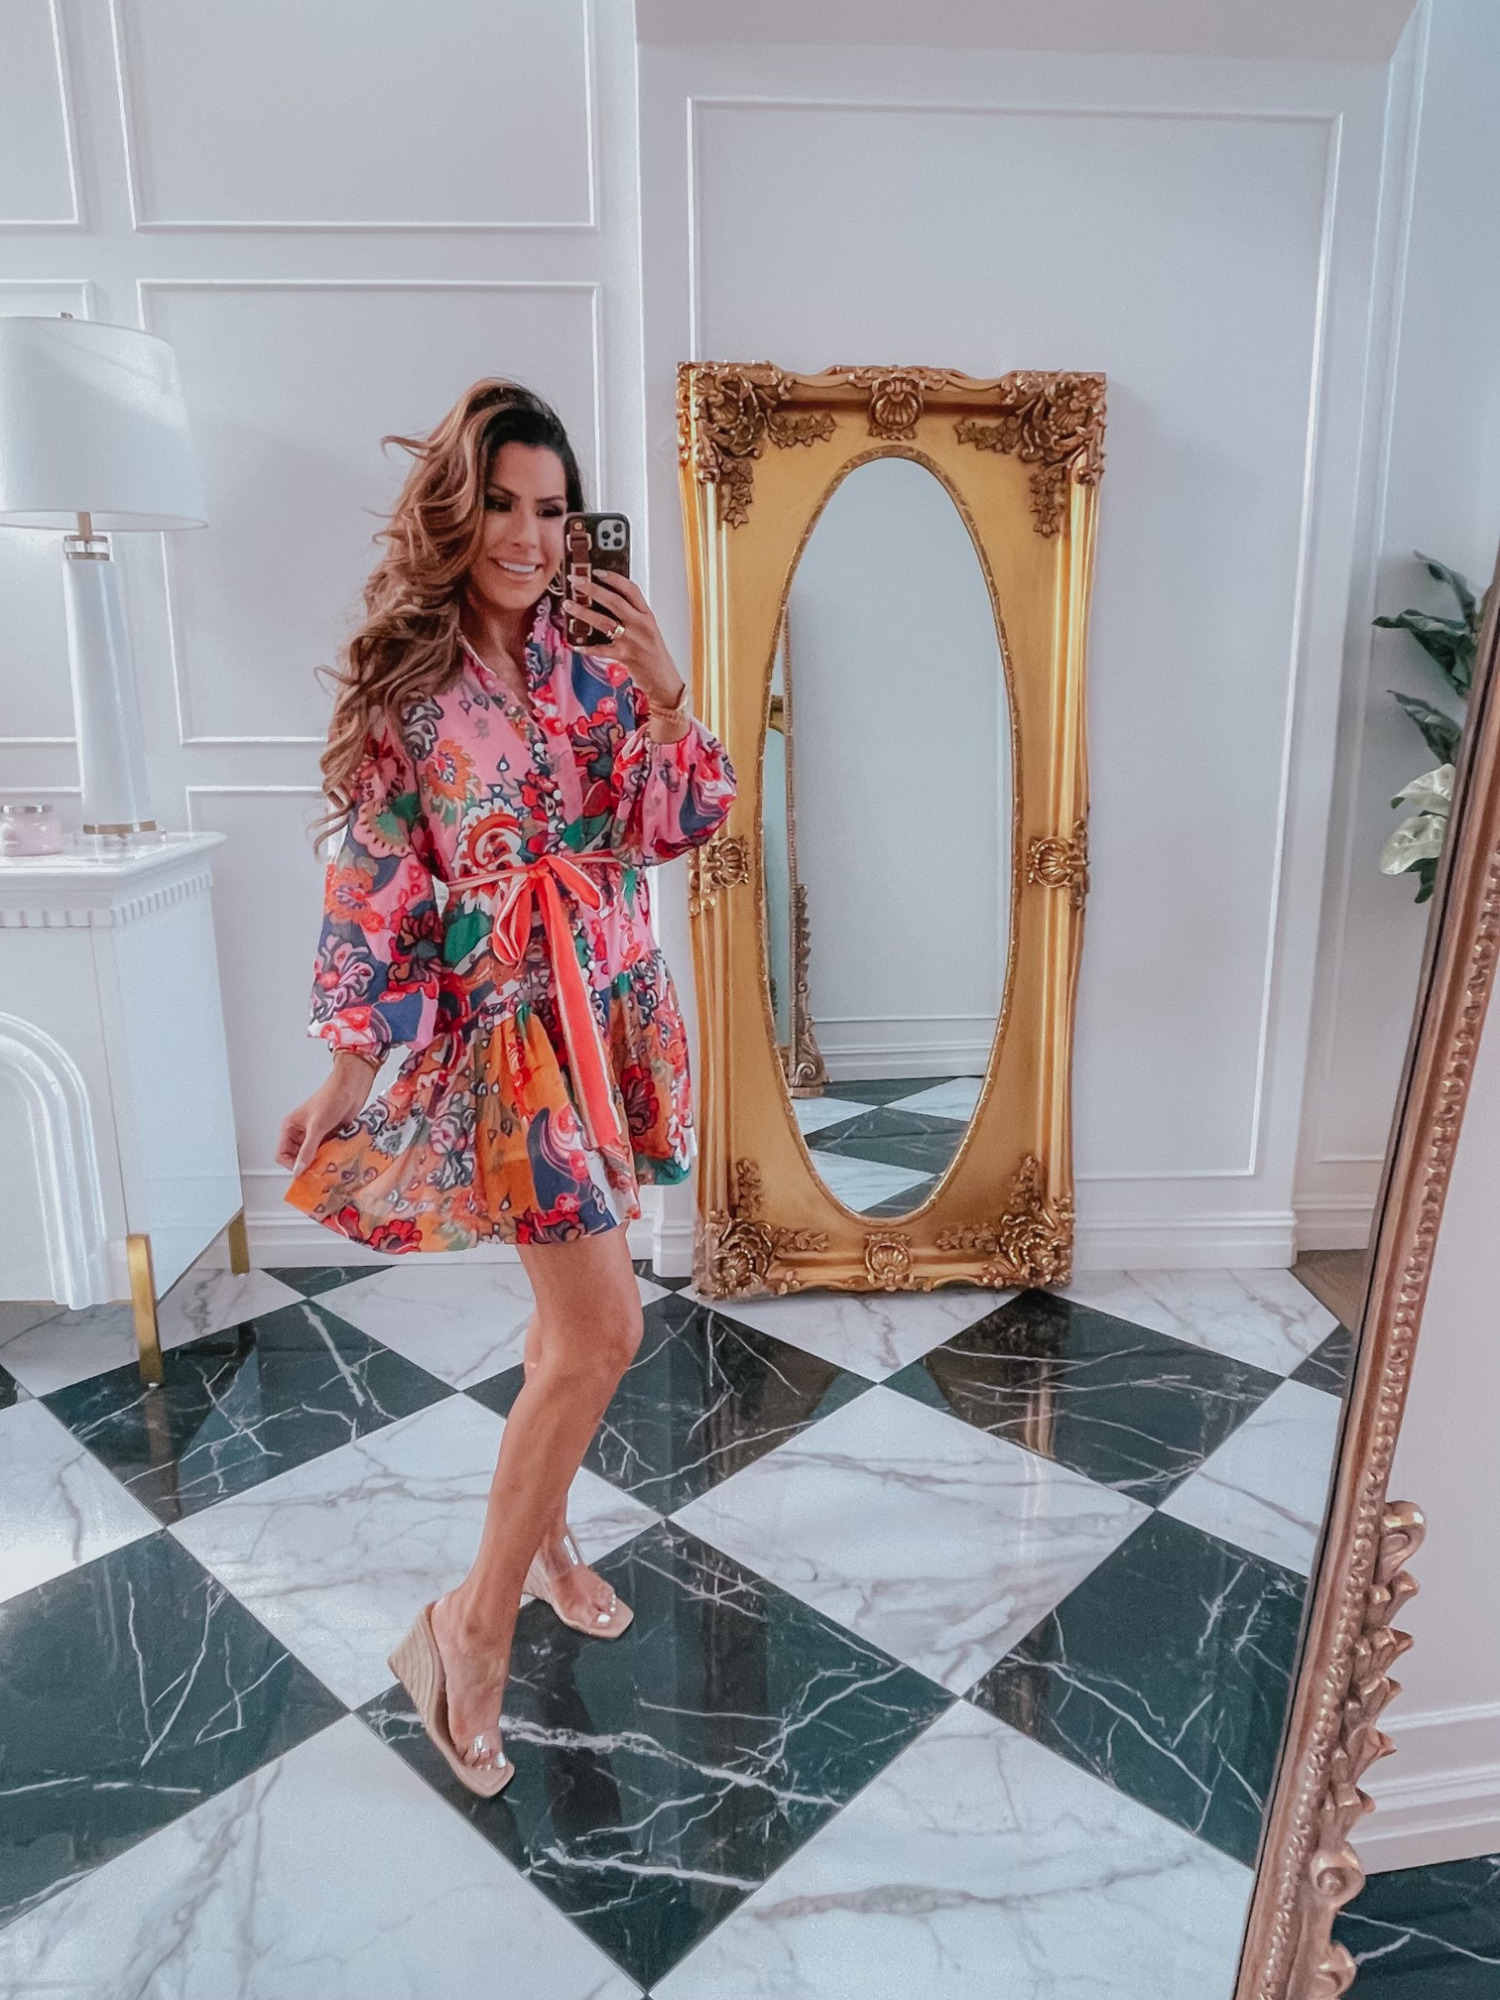 Red Dress Try On Haul, Emily Ann Gemma, Clear Wedges, Zimmermann dupe dress, colorful summer dress ideas, bright floral swing dress | June Instagram Recap by popular US fashion blog, The Sweetest Thing: image of Emily Gemma wearing a bright floral print dress and clear strap espadrilles.